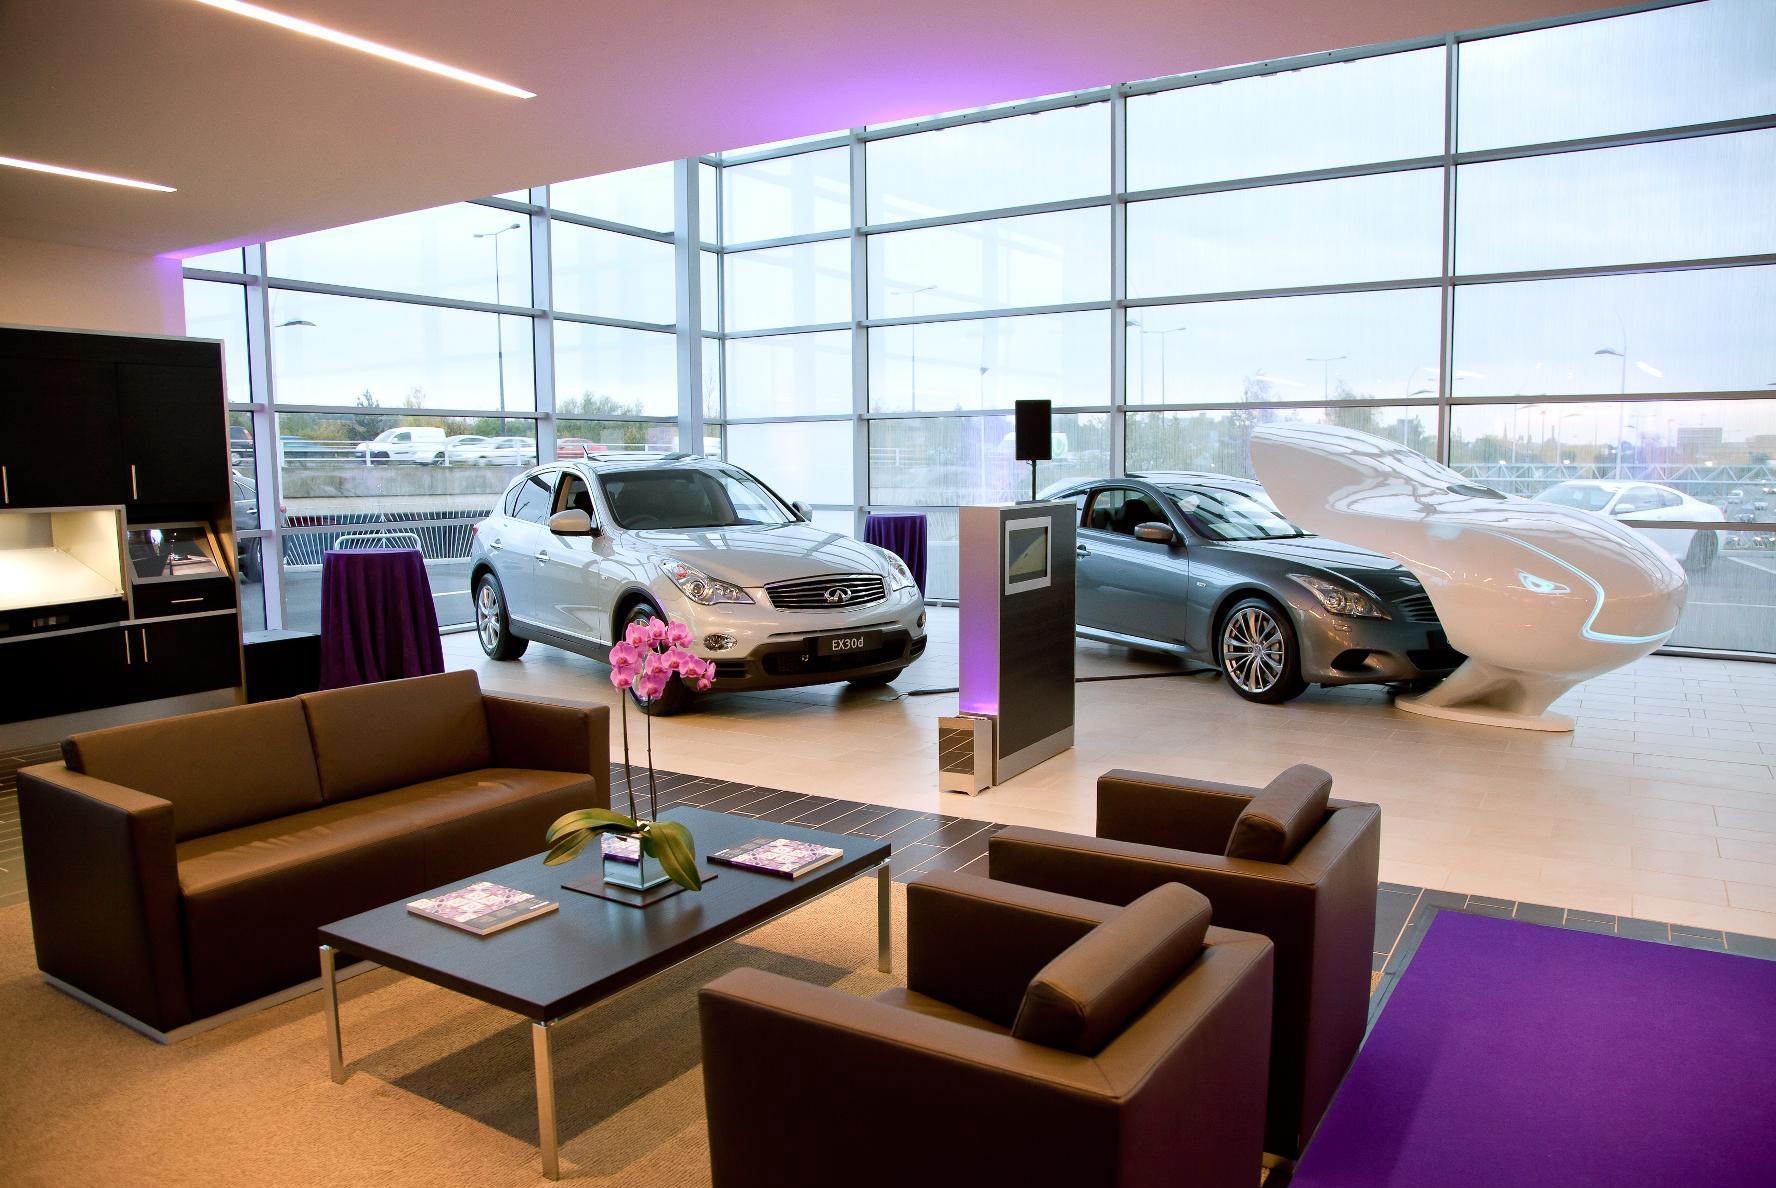 inquiry vip dealership an drive infiniti test in make car infinity htm on pass newmarket used